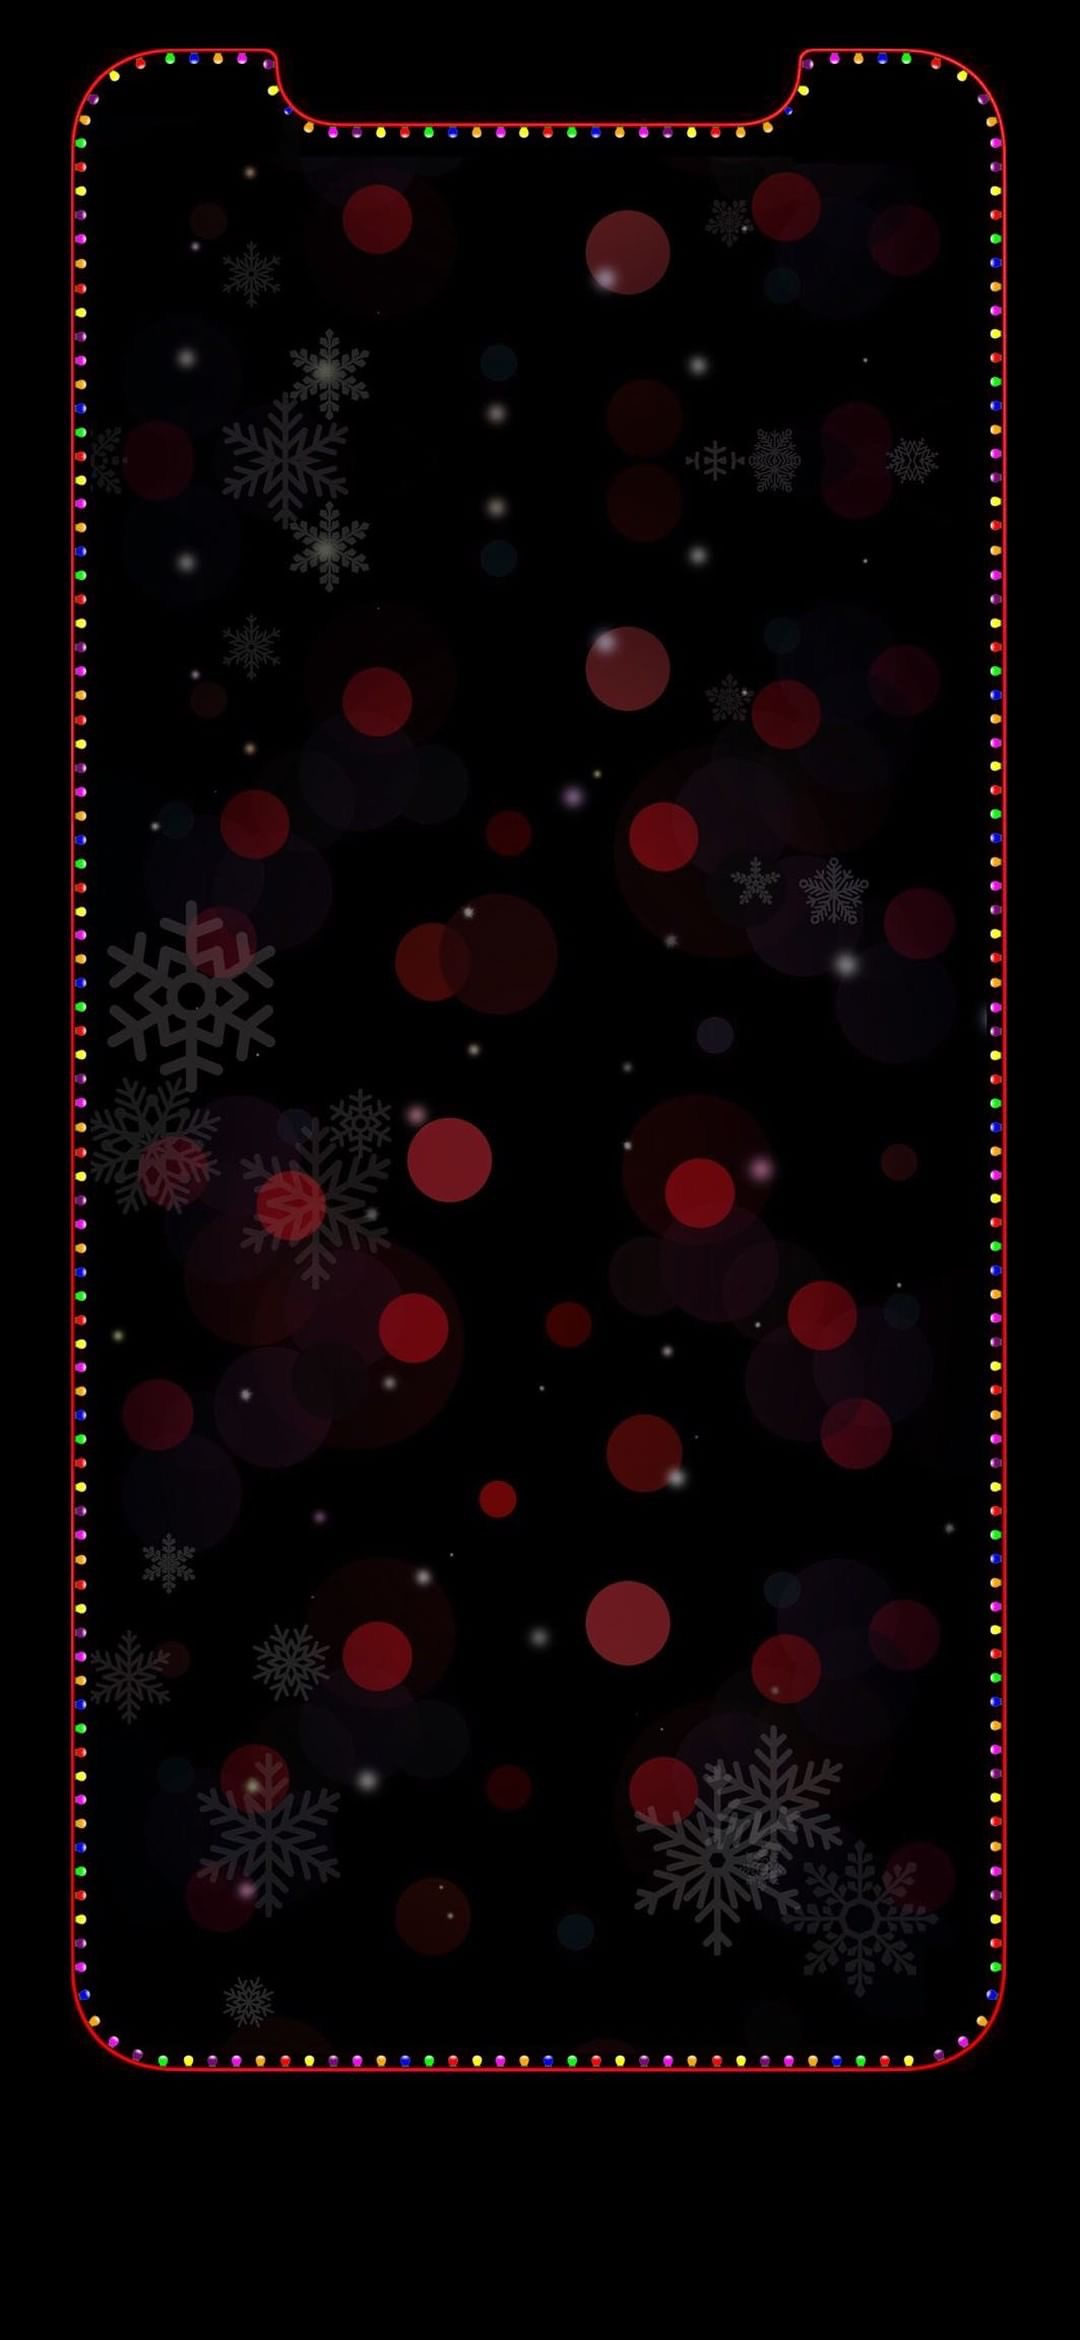 Christmas Wall Paper.Iphone X Christmas Wallpaper Macrumors Forums